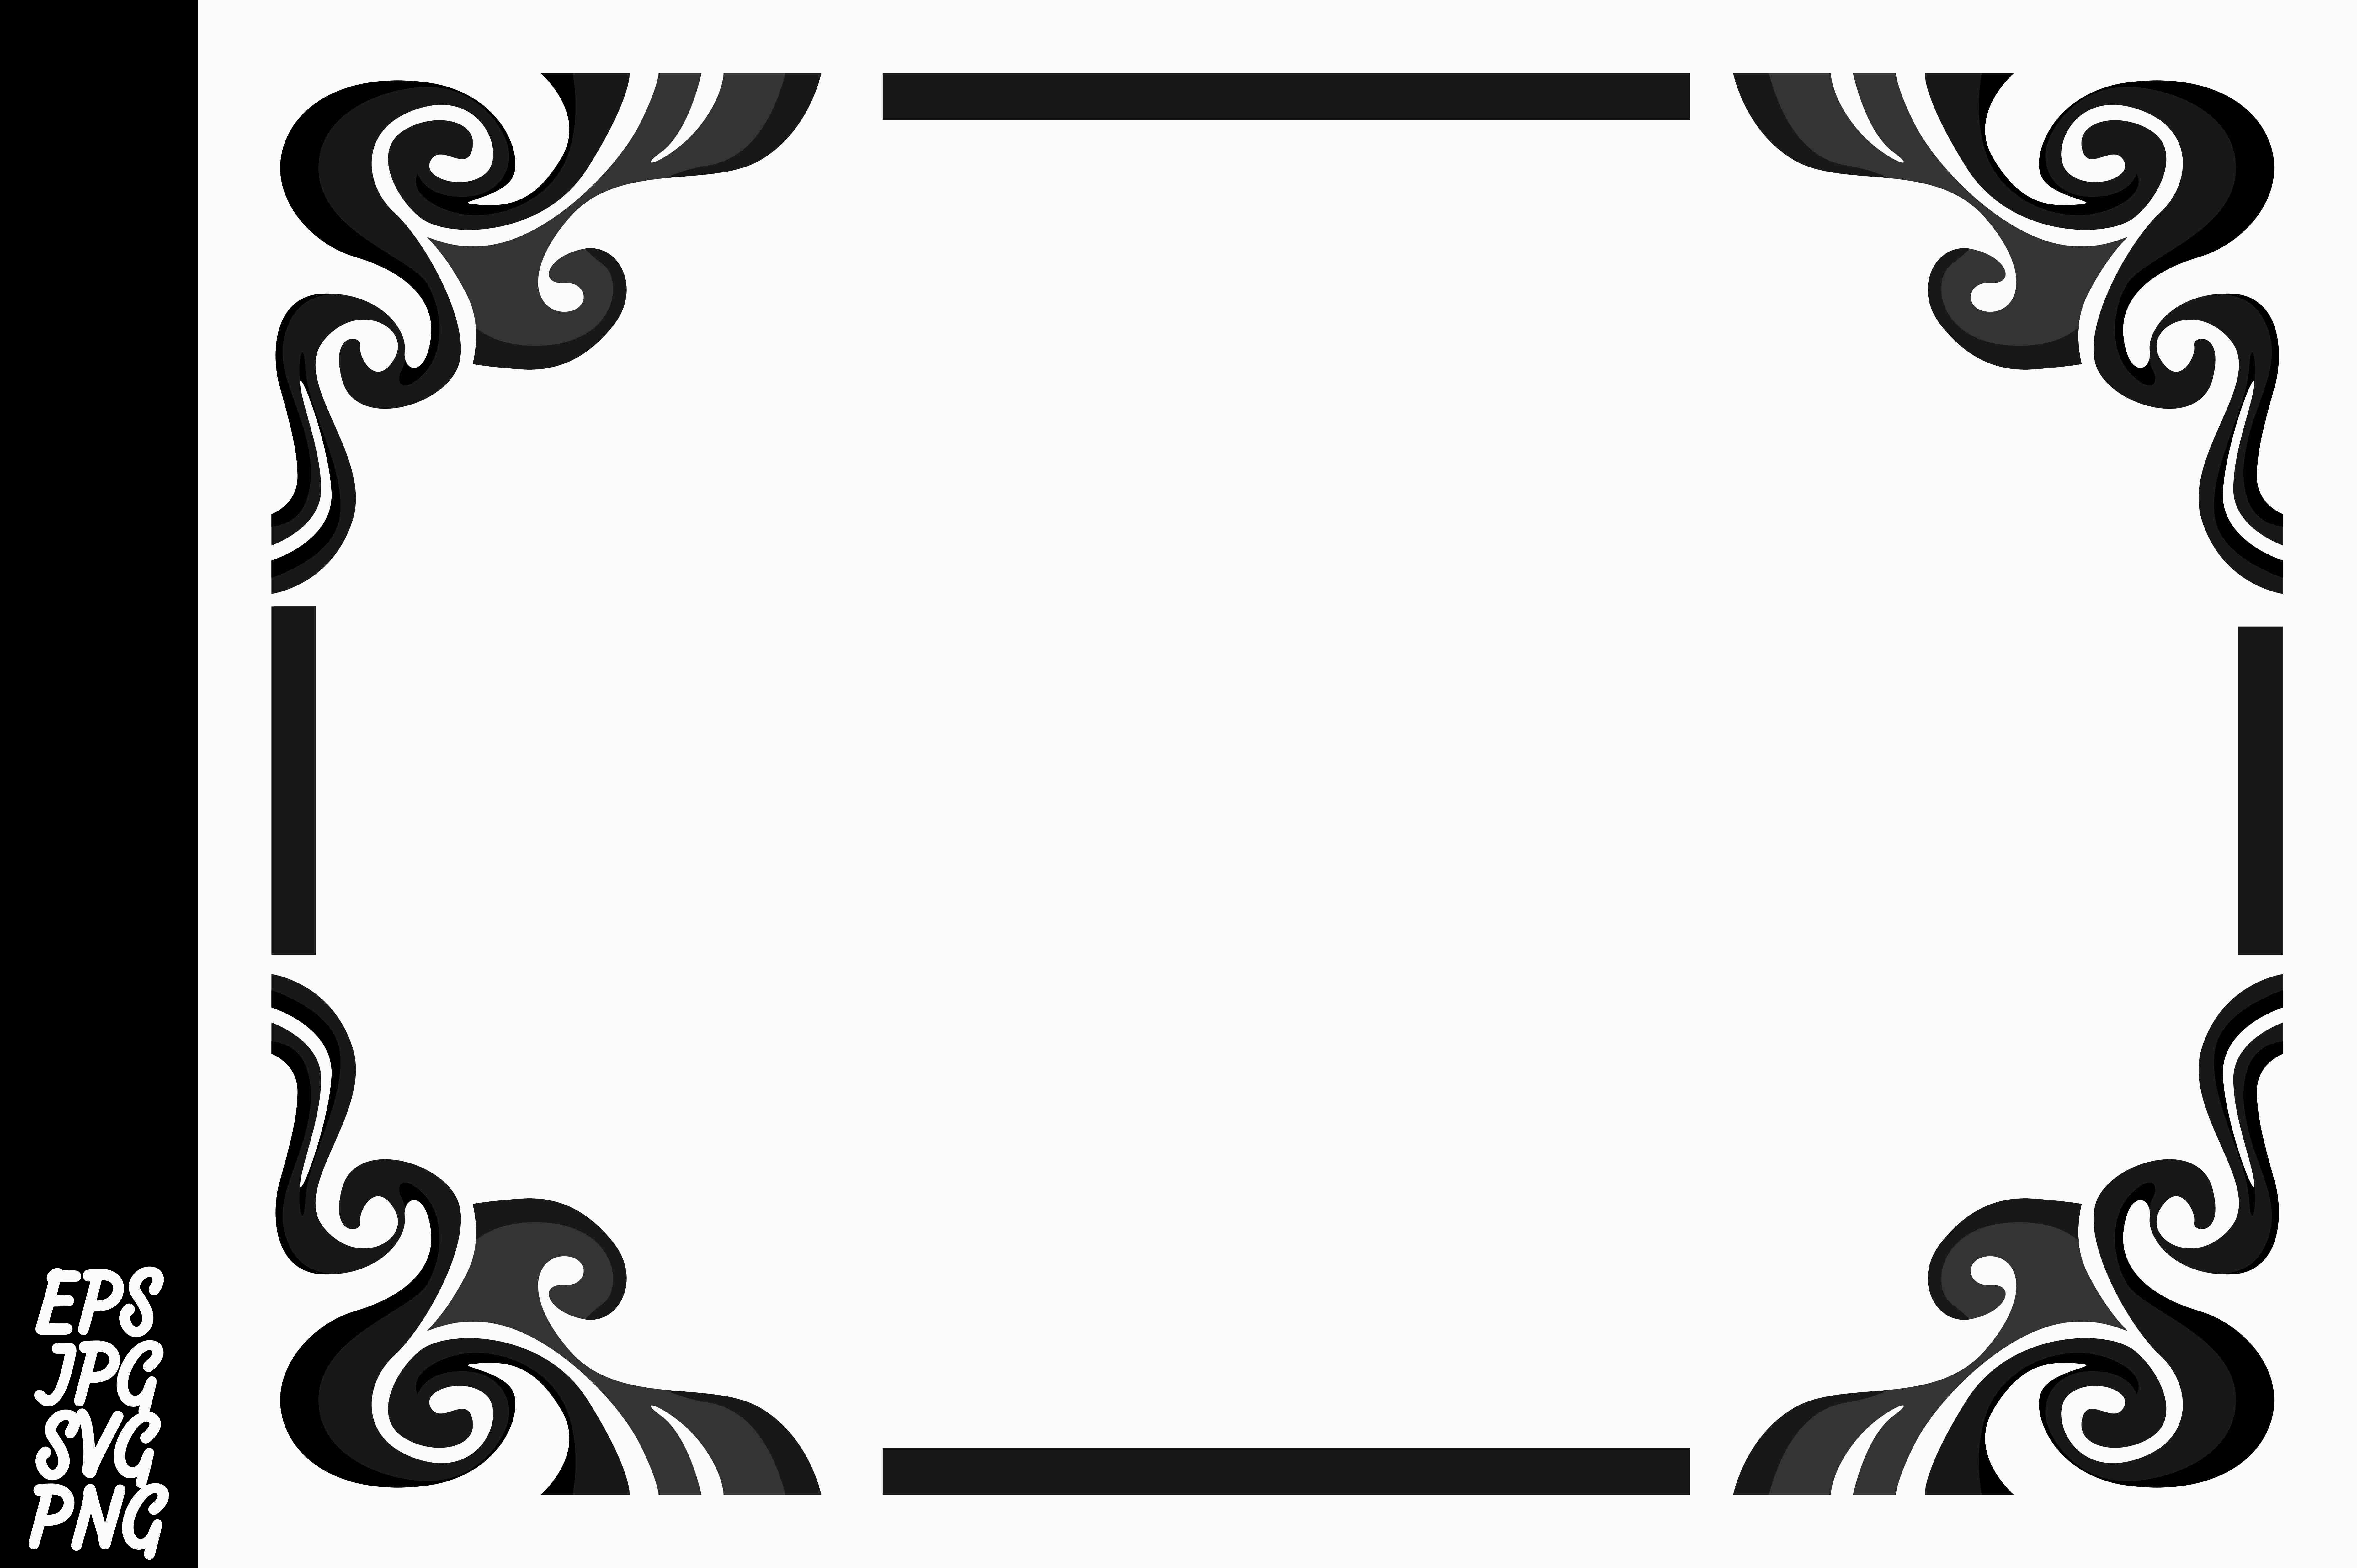 Download Free Black Ornament Border Vector Graphic By Arief Sapta Adjie for Cricut Explore, Silhouette and other cutting machines.